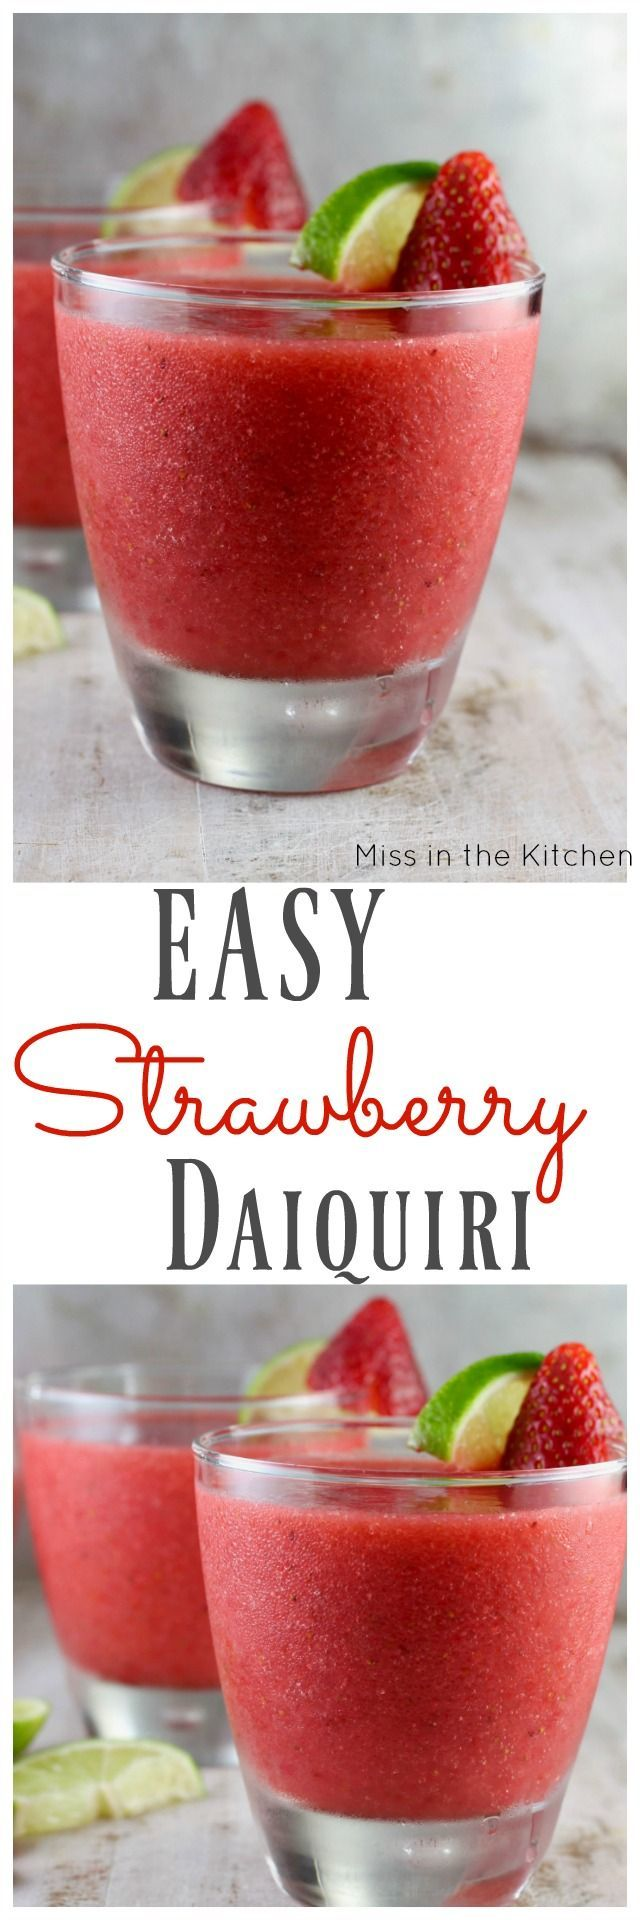 Easy Strawberry Daiquiri Cocktail ~ Perfect weekend cocktail recipe found at http://MissintheKitchen.com